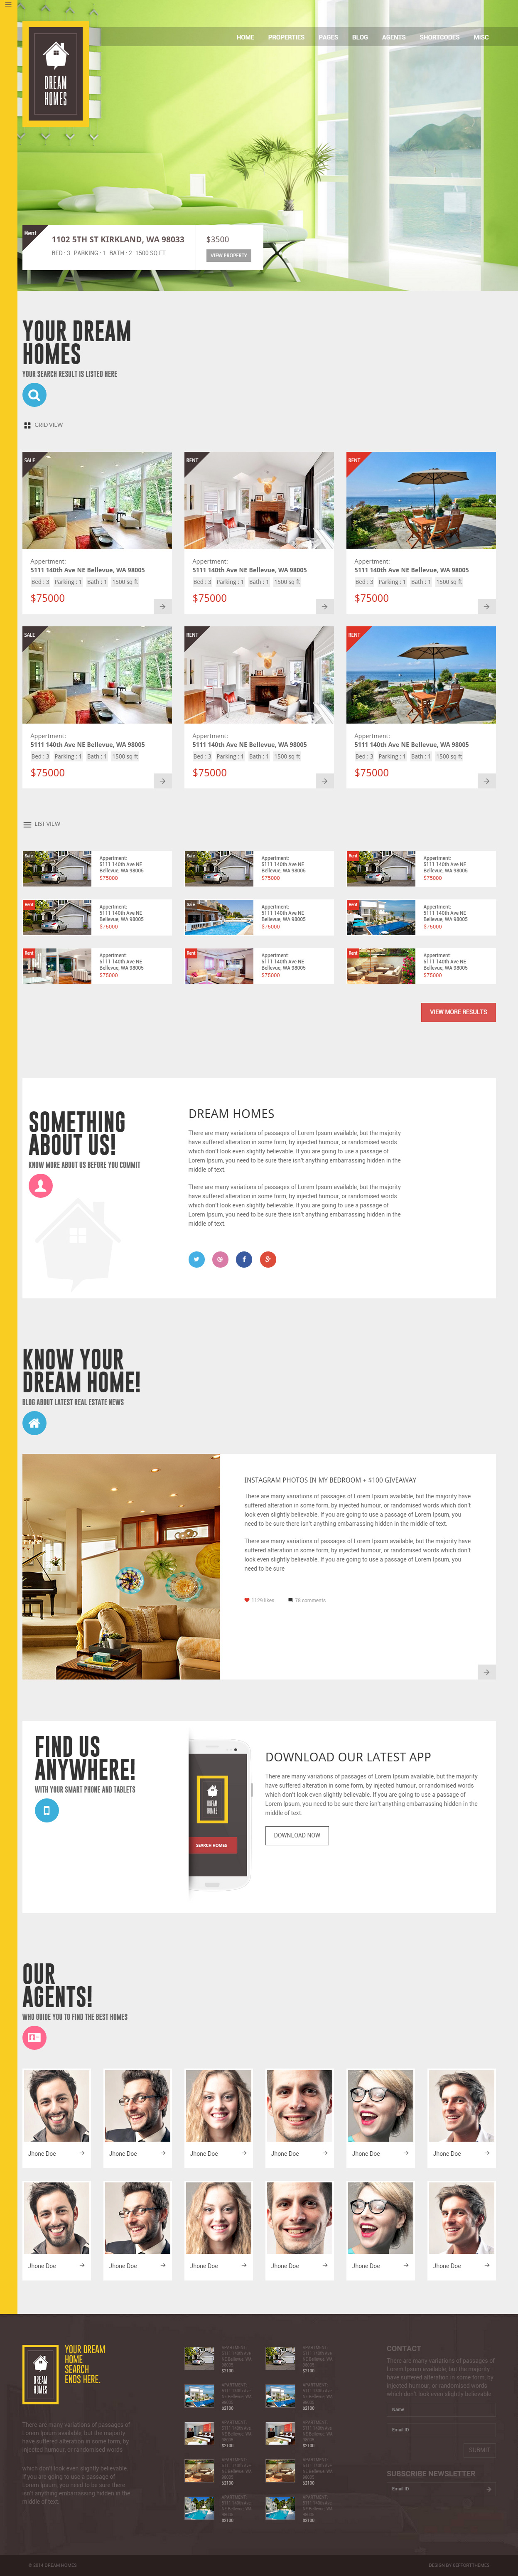 Dream home is premium full responsive retina html5 realestate website pronofoot35fo Gallery